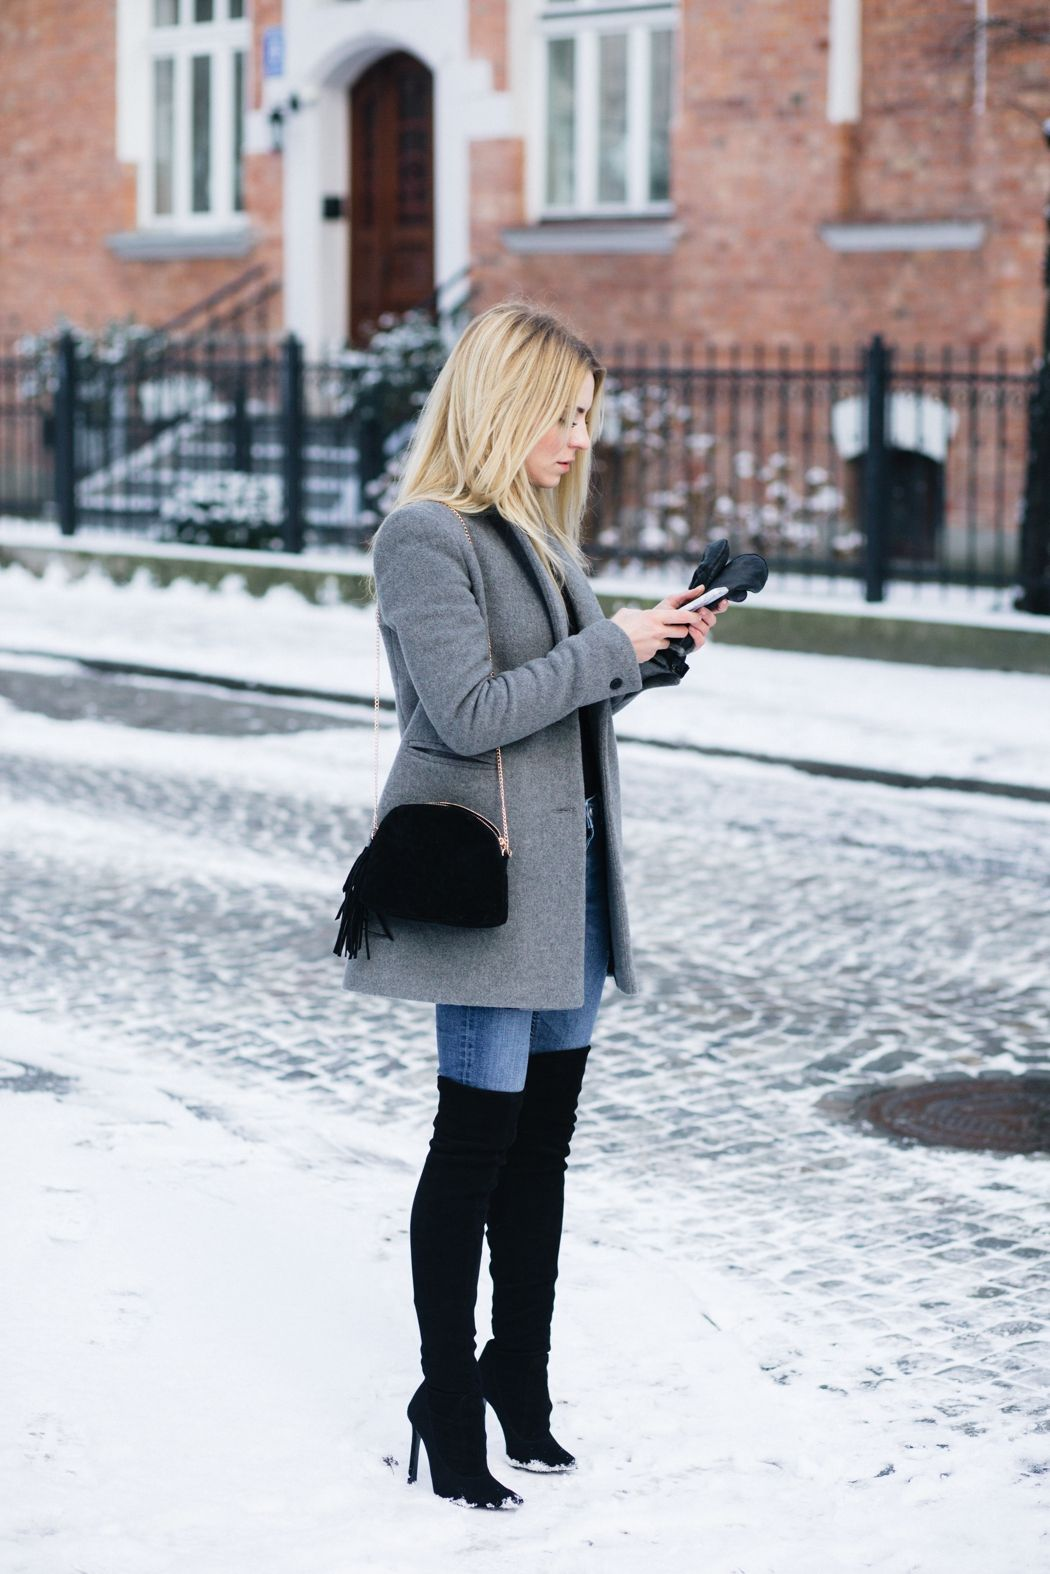 f65519be5b7 Winter outfit idea with grey jacket